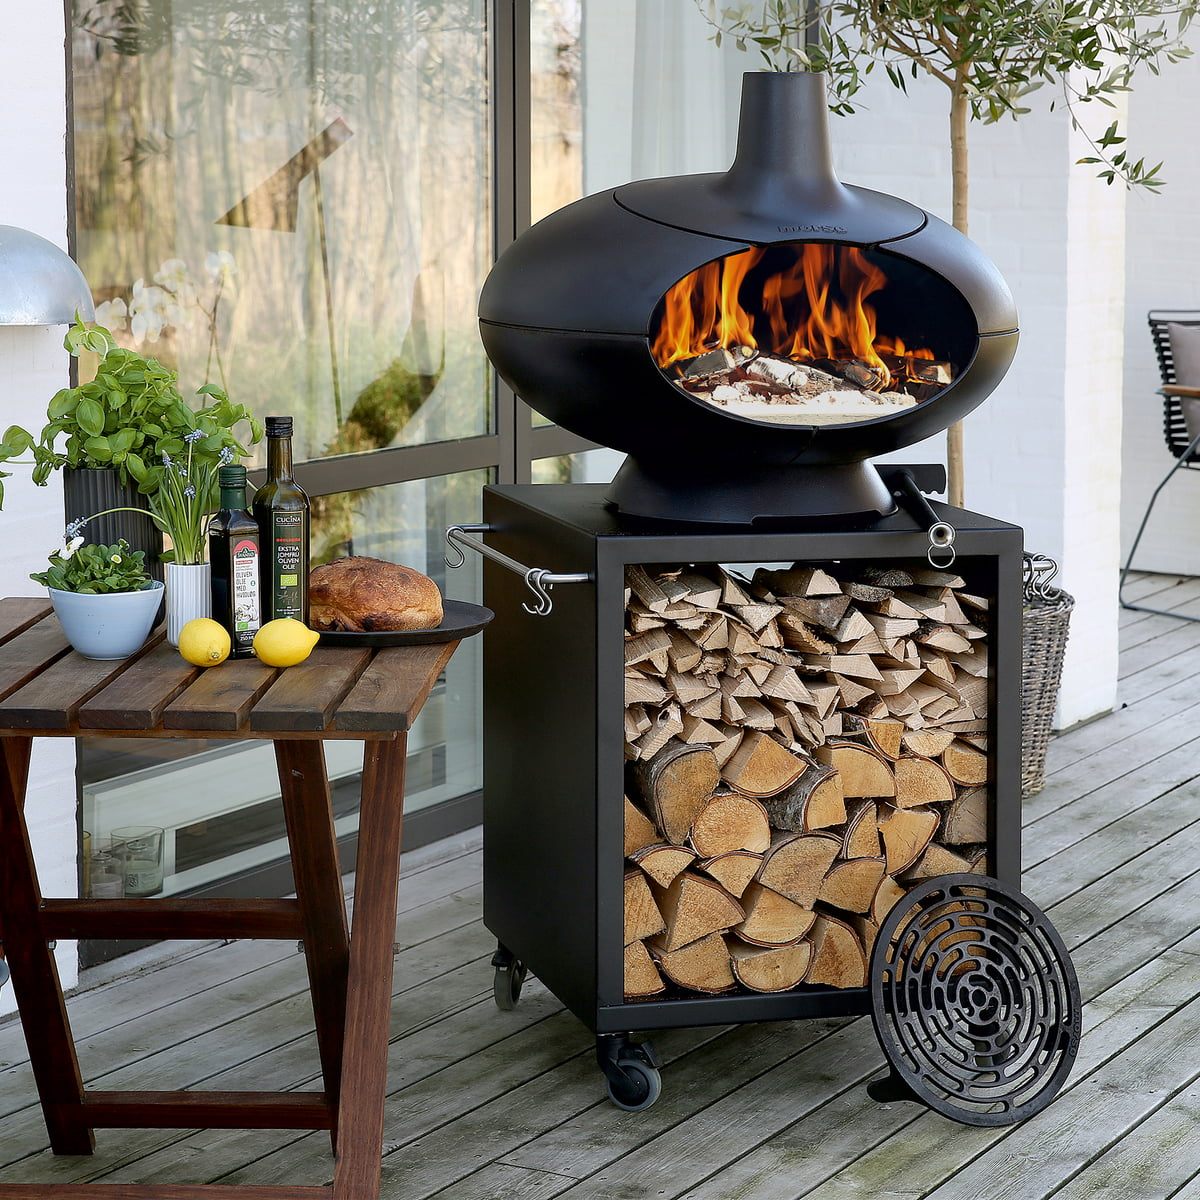 Barbecue And Garden Table From Morsø